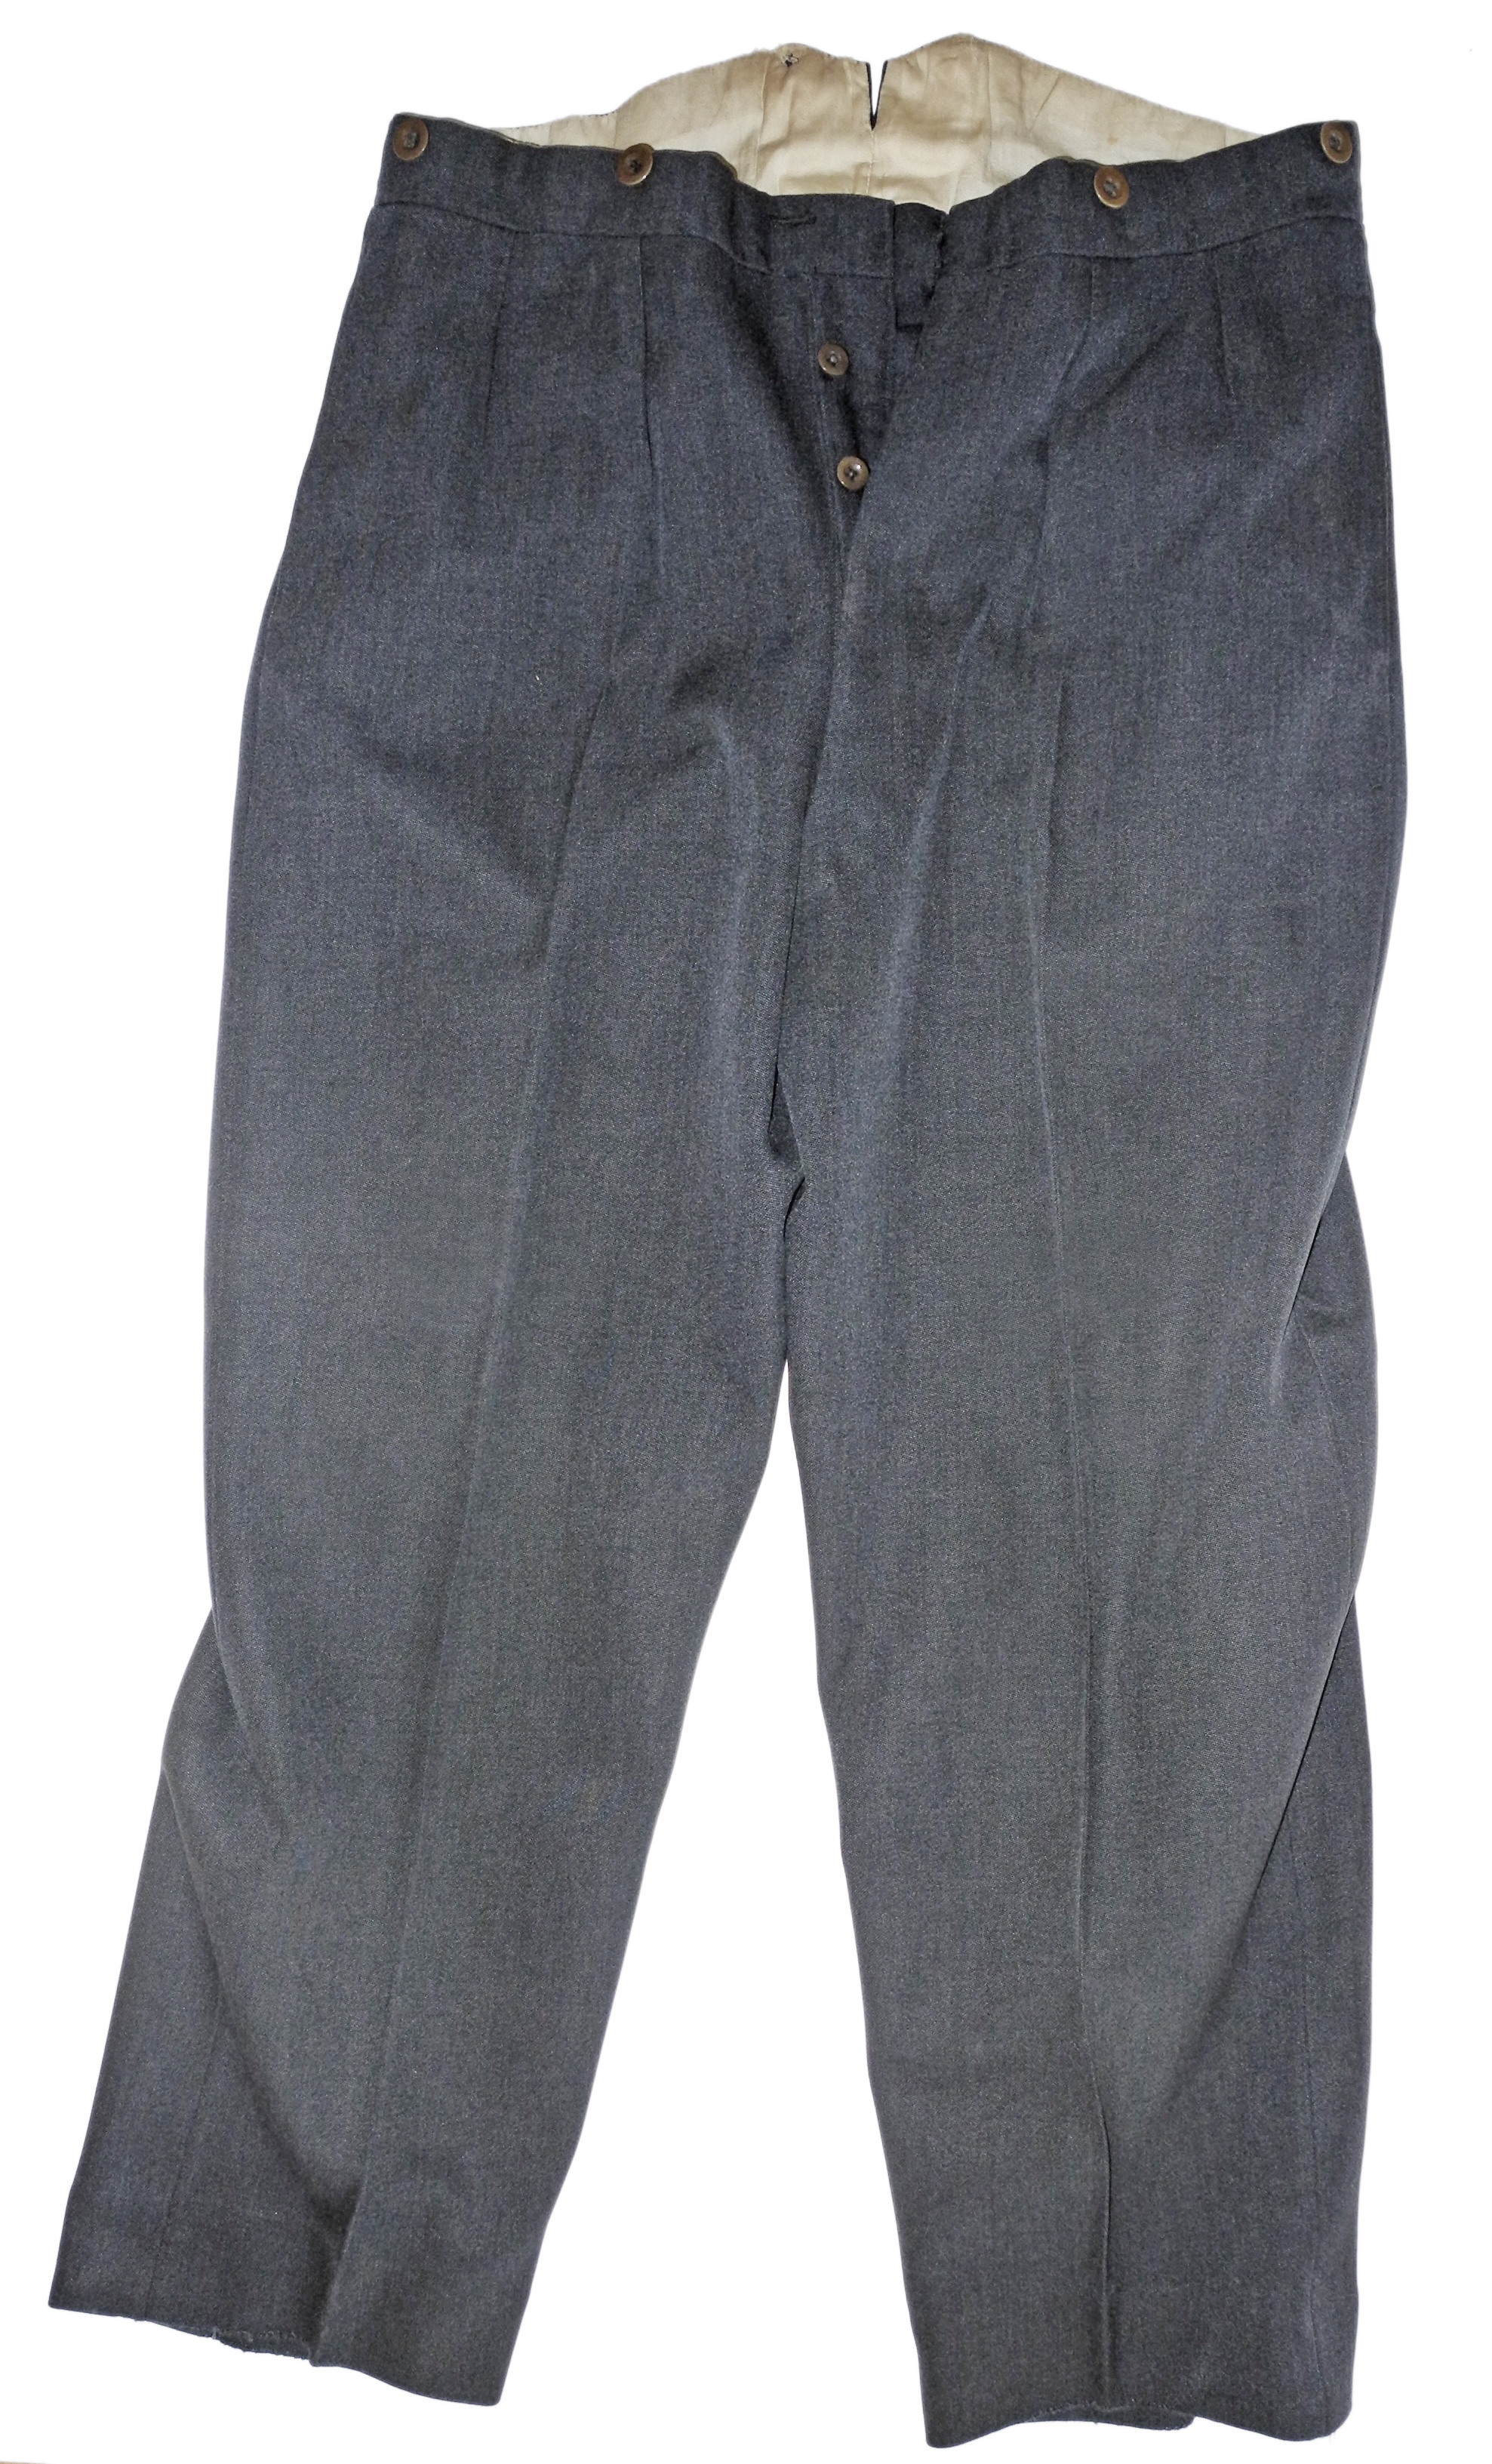 RAF officer's SD trousers